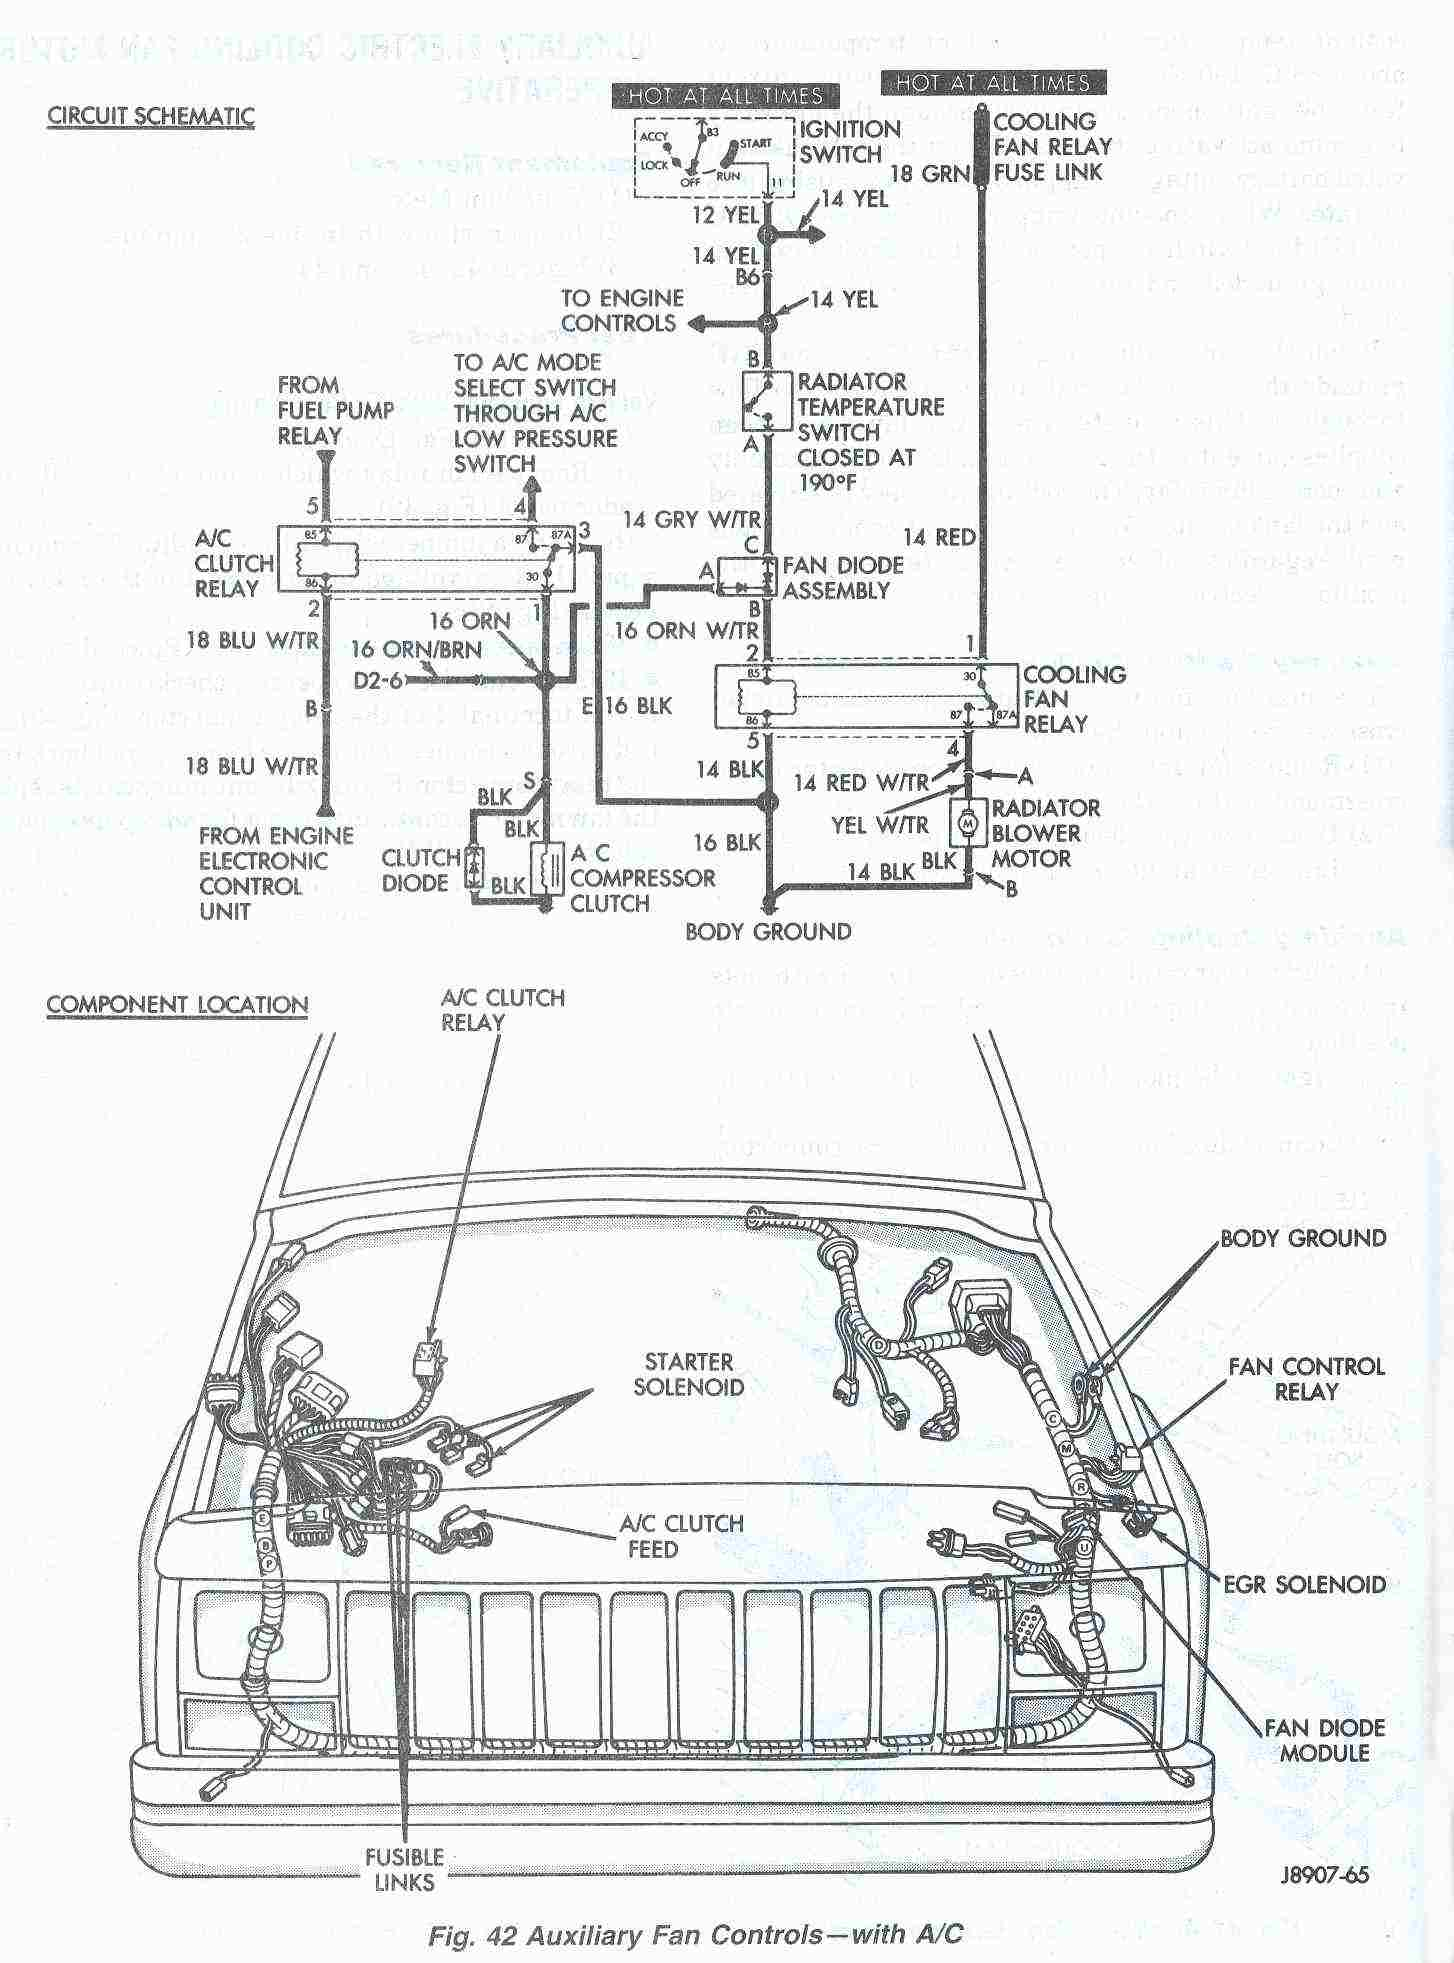 hight resolution of  jeep grand cherokee wiring diagram test procedures for vehicle equipped with air conditioning